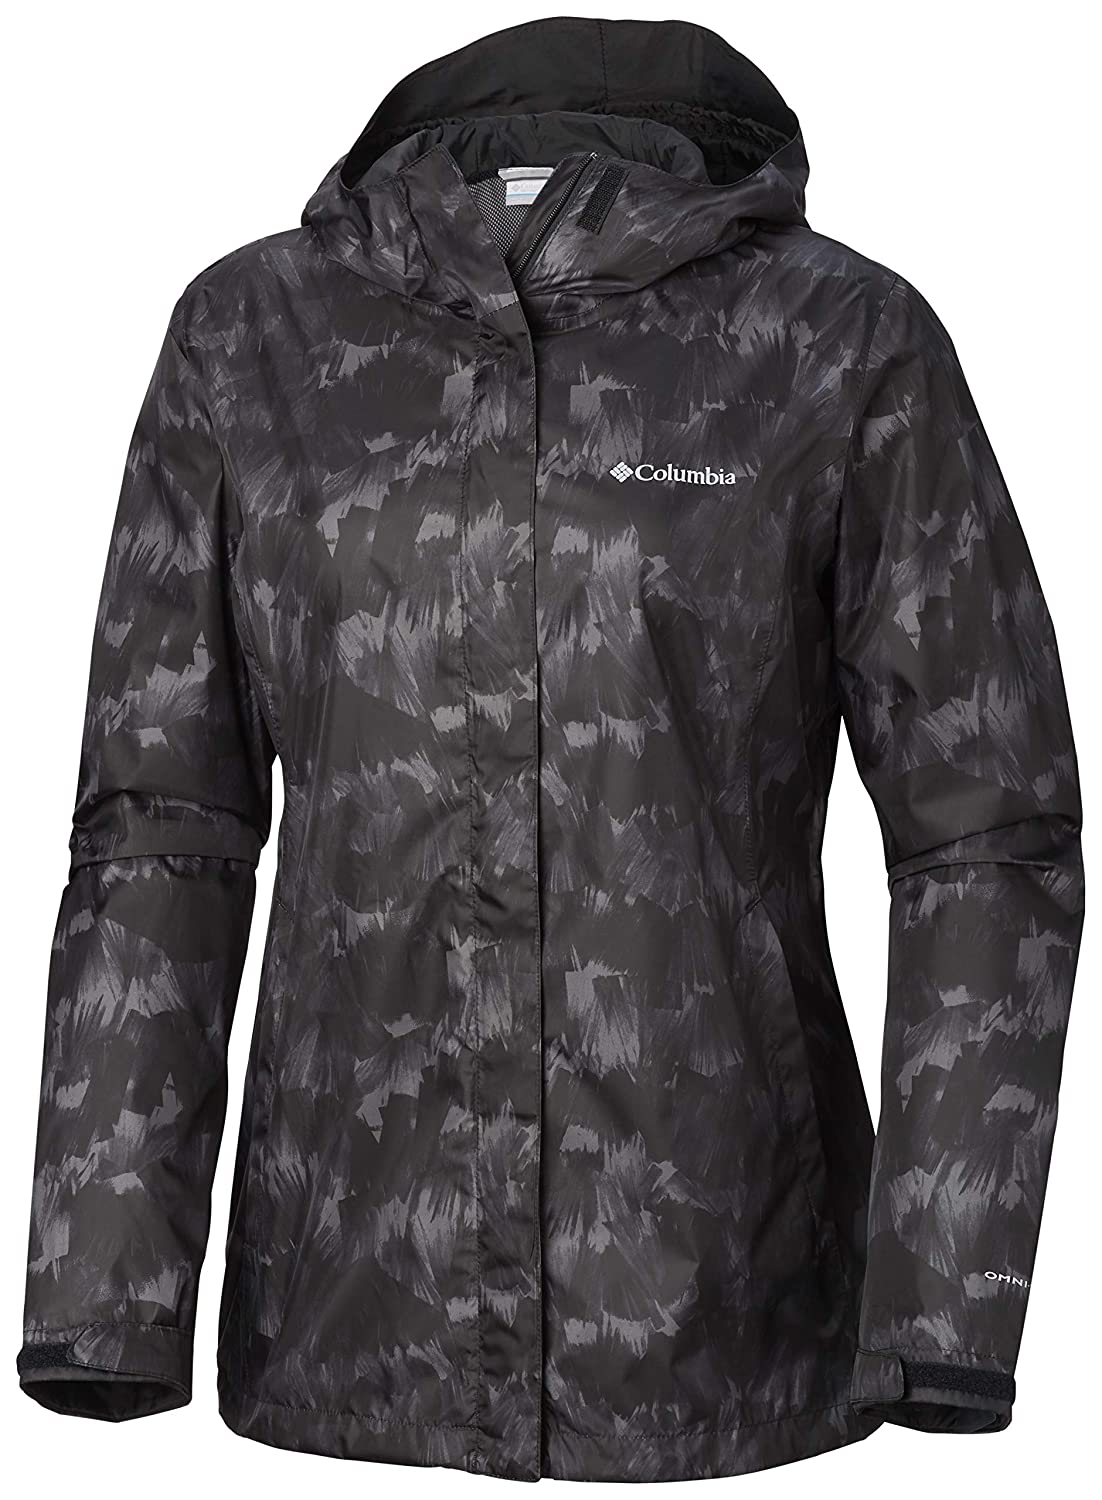 Black Quartz Print Columbia Women's Arcadia Print Jacket, Waterproof & Breathable